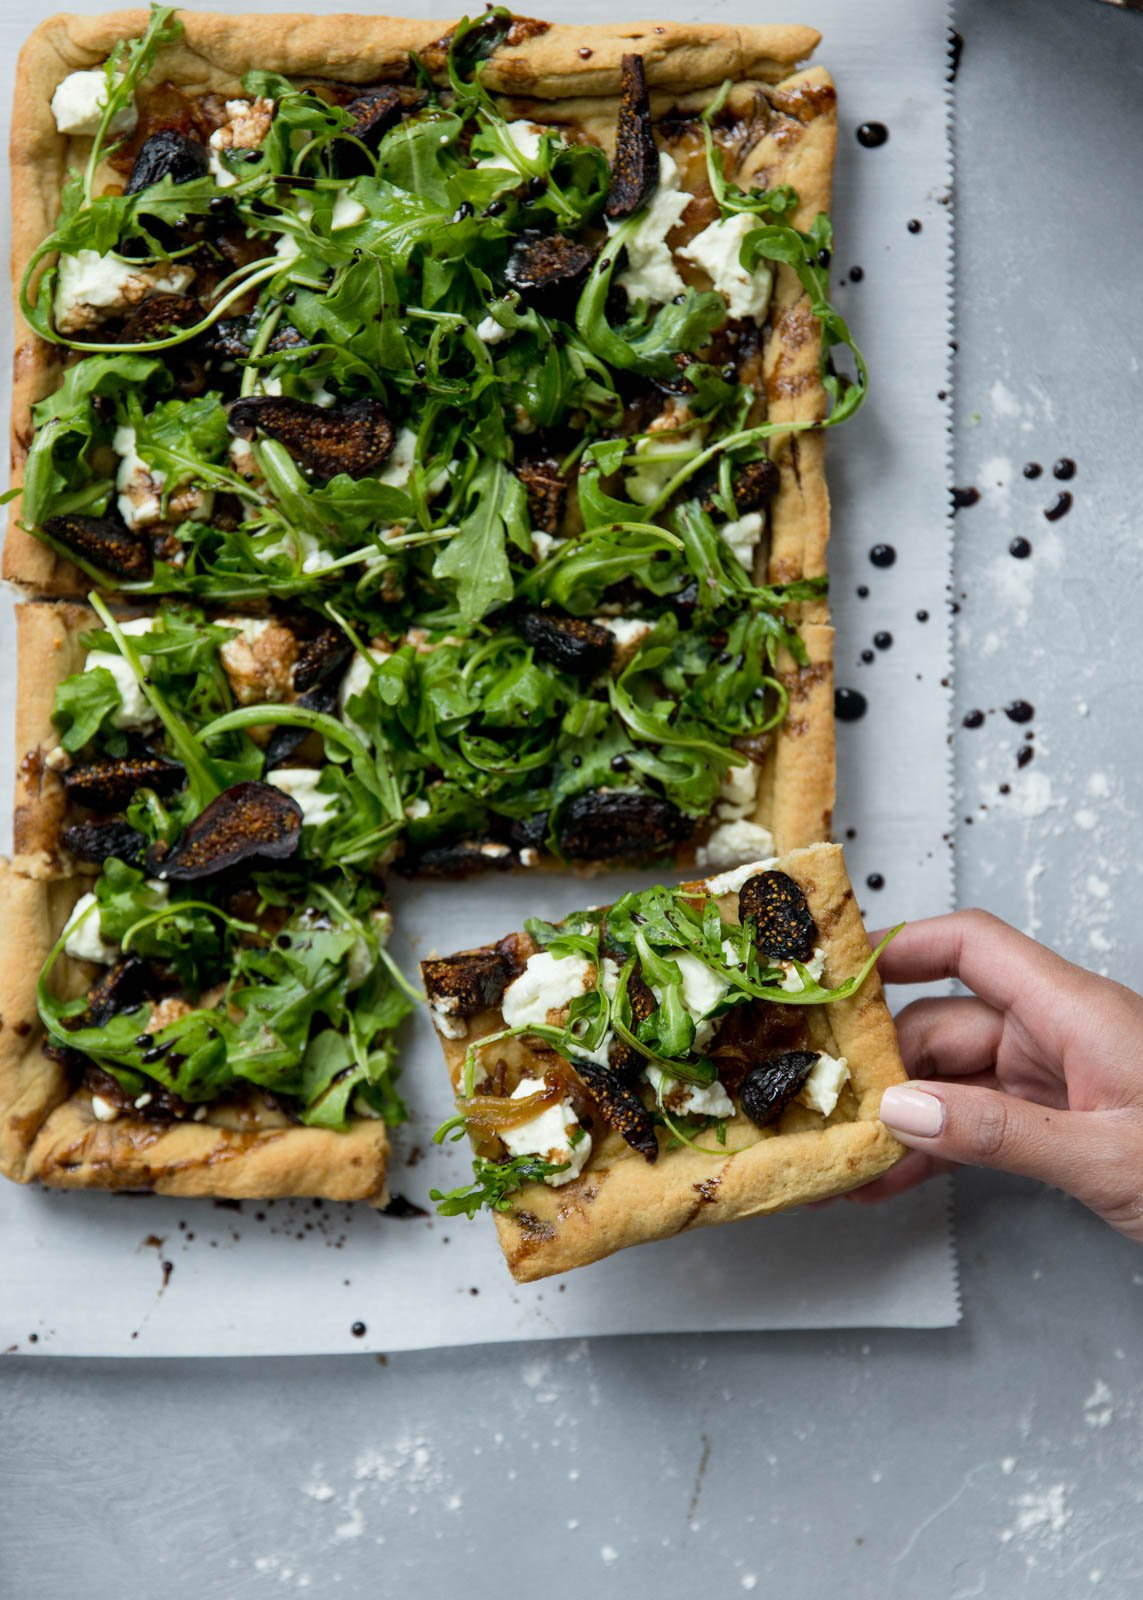 goat cheese pizza topped with arugula, figs and goat cheese